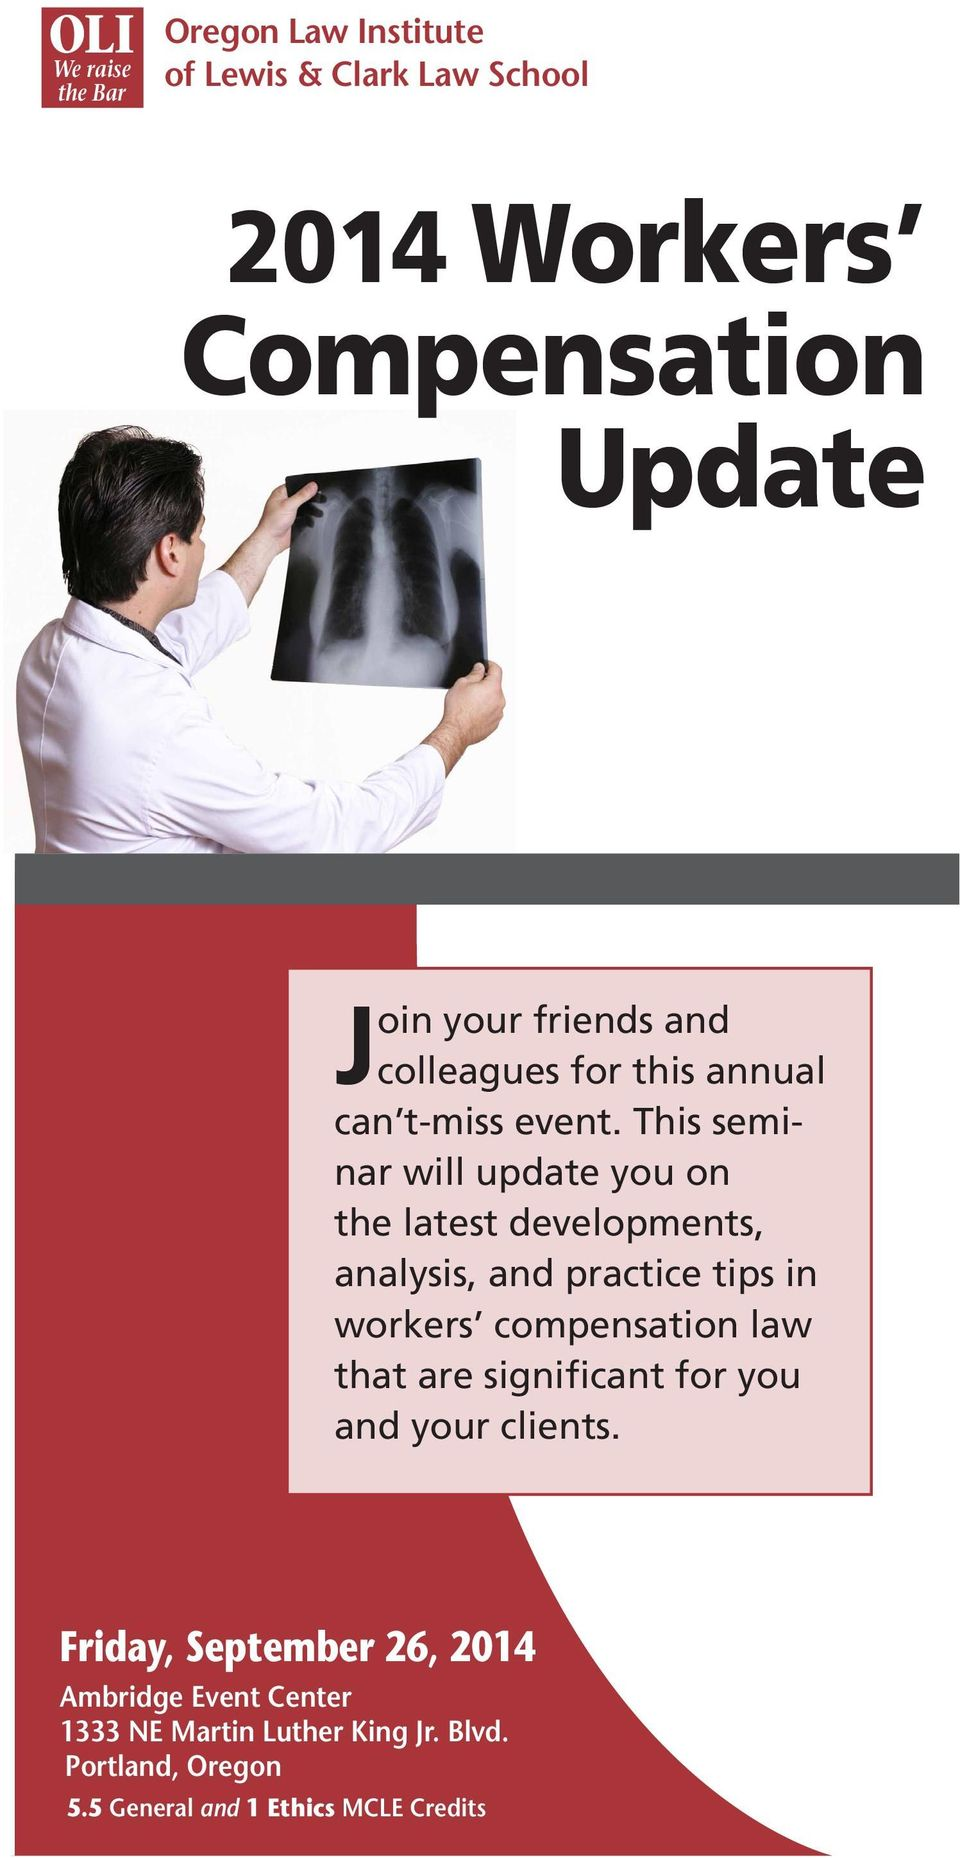 This seminar will update you on the latest developments, analysis, and practice tips in workers compensation law that